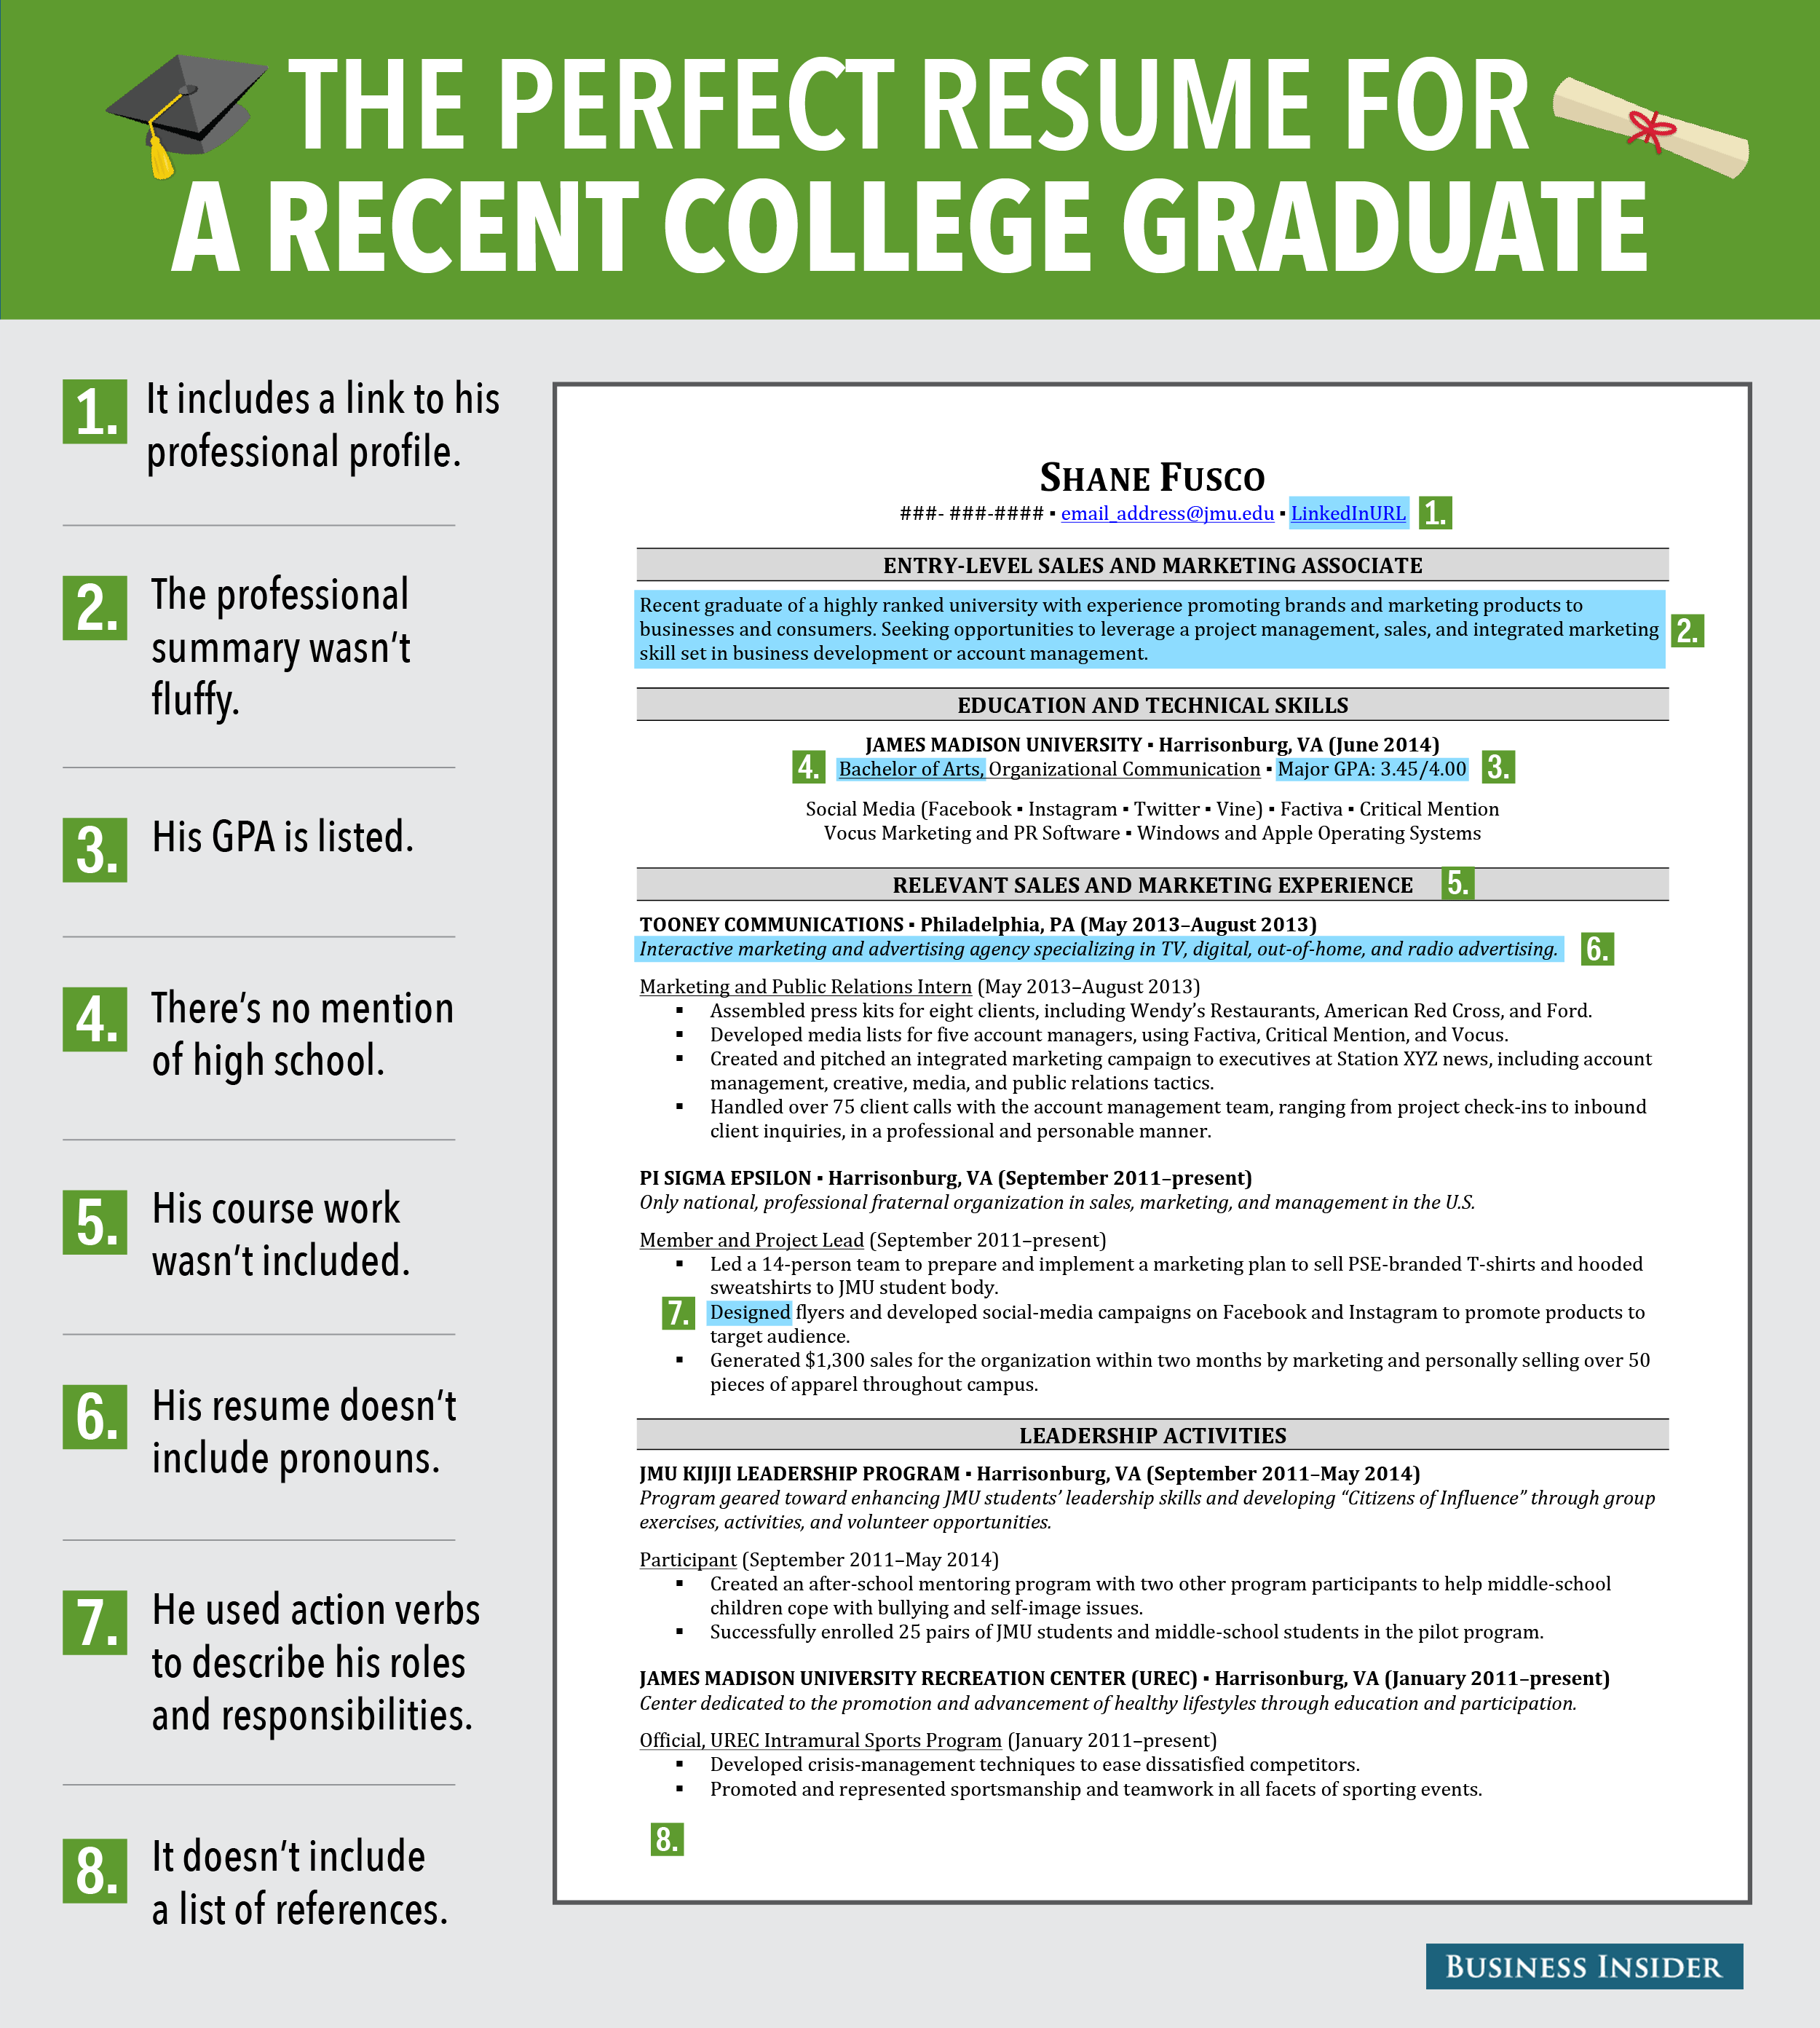 Graduate School Resume 8 Reasons This Is An Excellent Resume For A Recent College